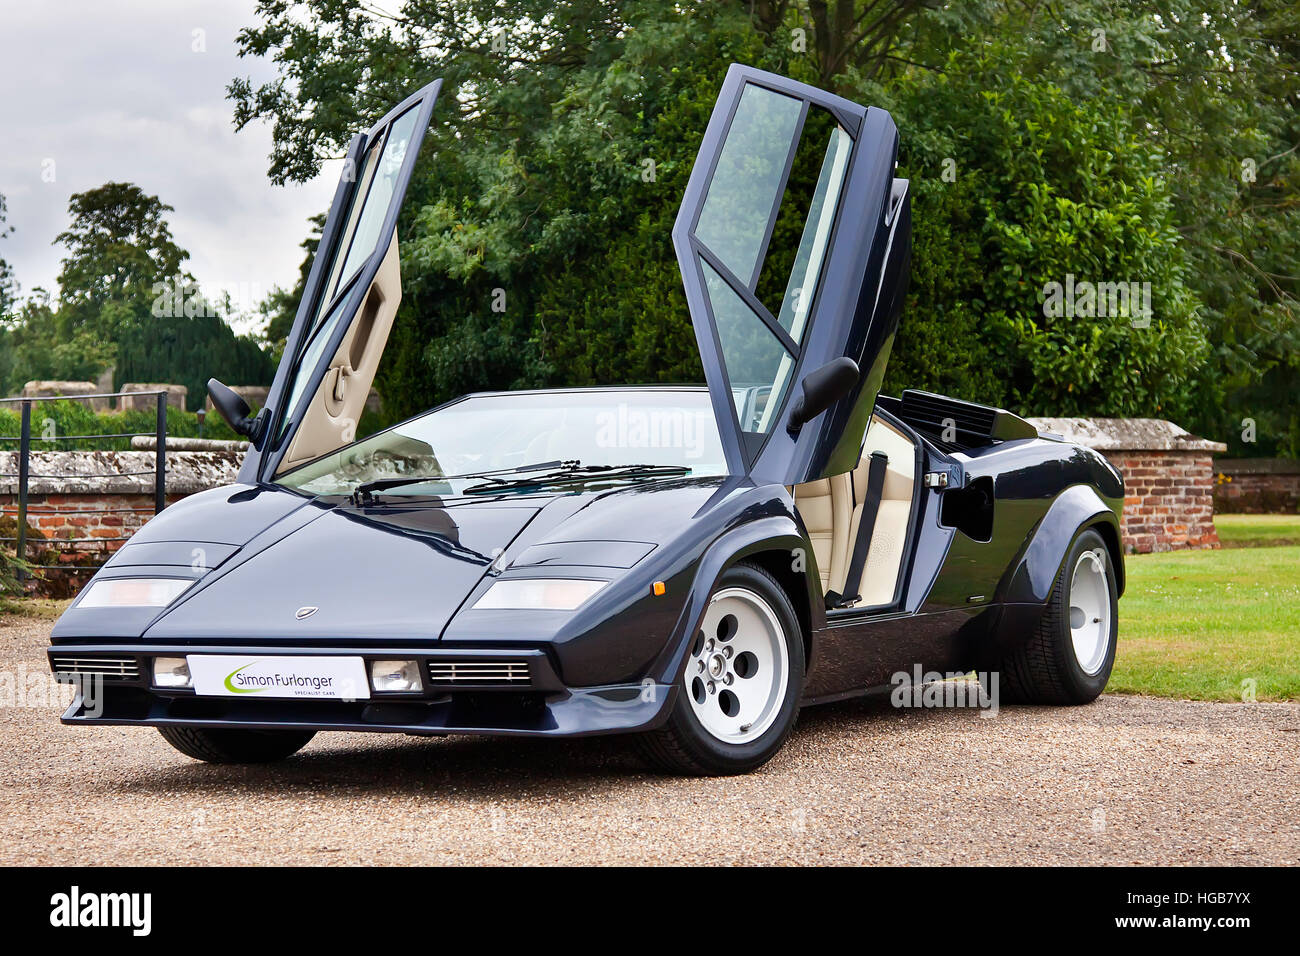 Lamborghini Countach 5000 Quattrovalvole Stock Photo Royalty Free Image 130554814 Alamy